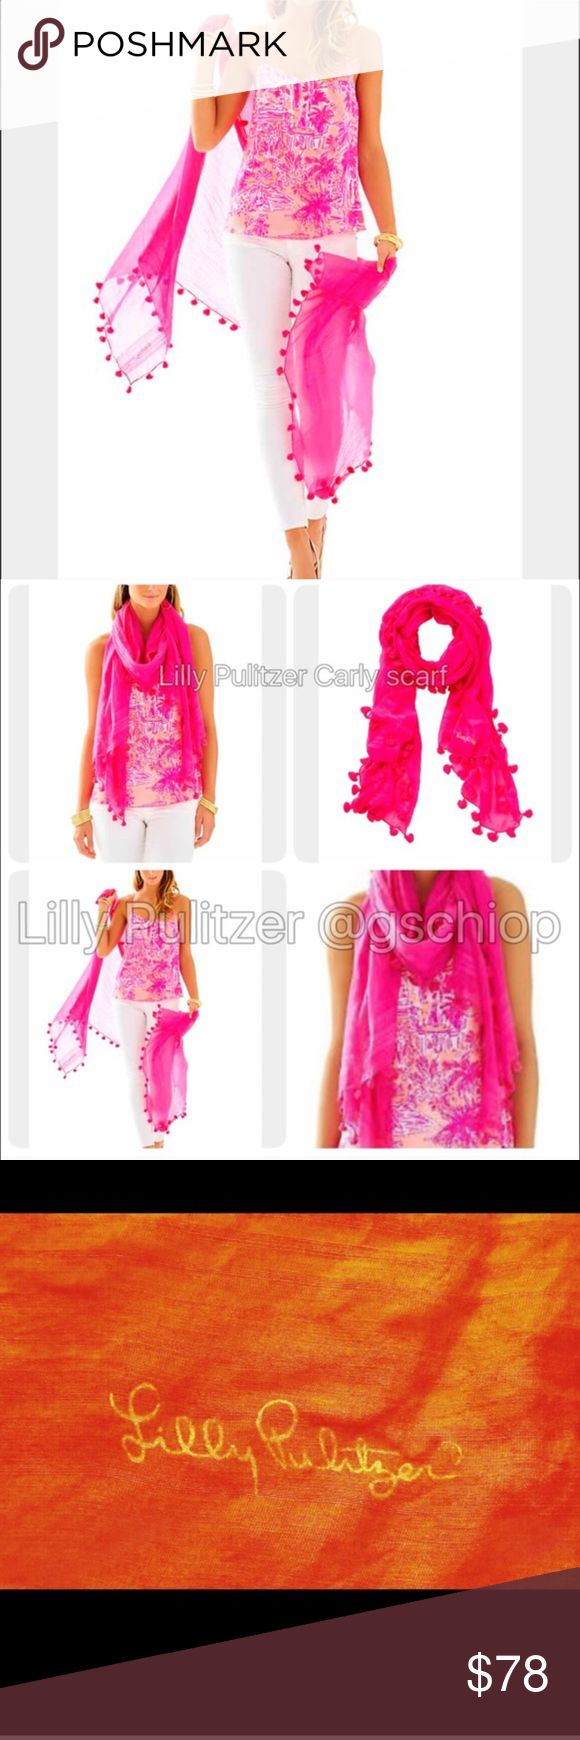 Lilly Pulitzer Pink scarf Elsa Top Resort White Lilly Pulitzer. As seen. NWT. I don't trade but feel free to make an offer. Lilly Pulitzer Accessories Scarves & Wraps